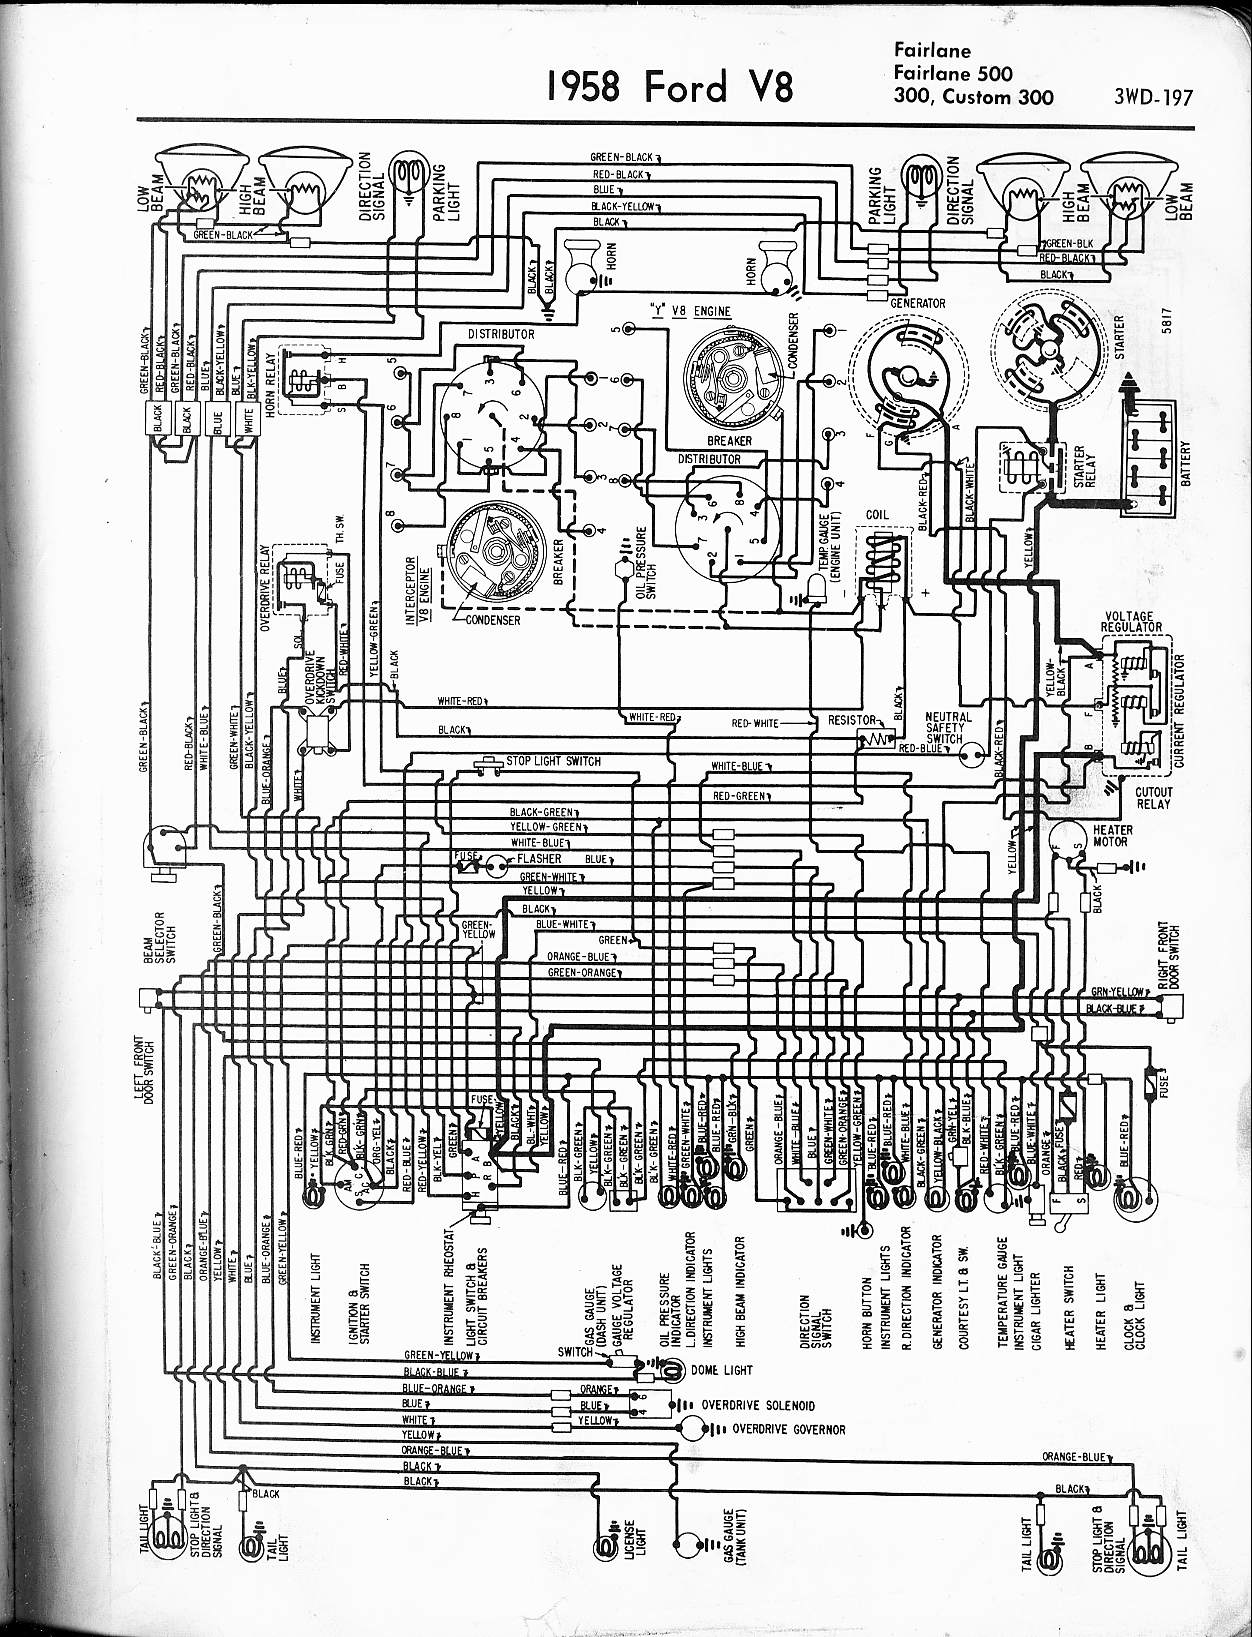 [SCHEMATICS_48ZD]  3369207 1966 Chrysler New Yorker Wiring Diagram | Wiring Resources | 1966 Chrysler New Yorker Wiring Diagram |  | Wiring Resources